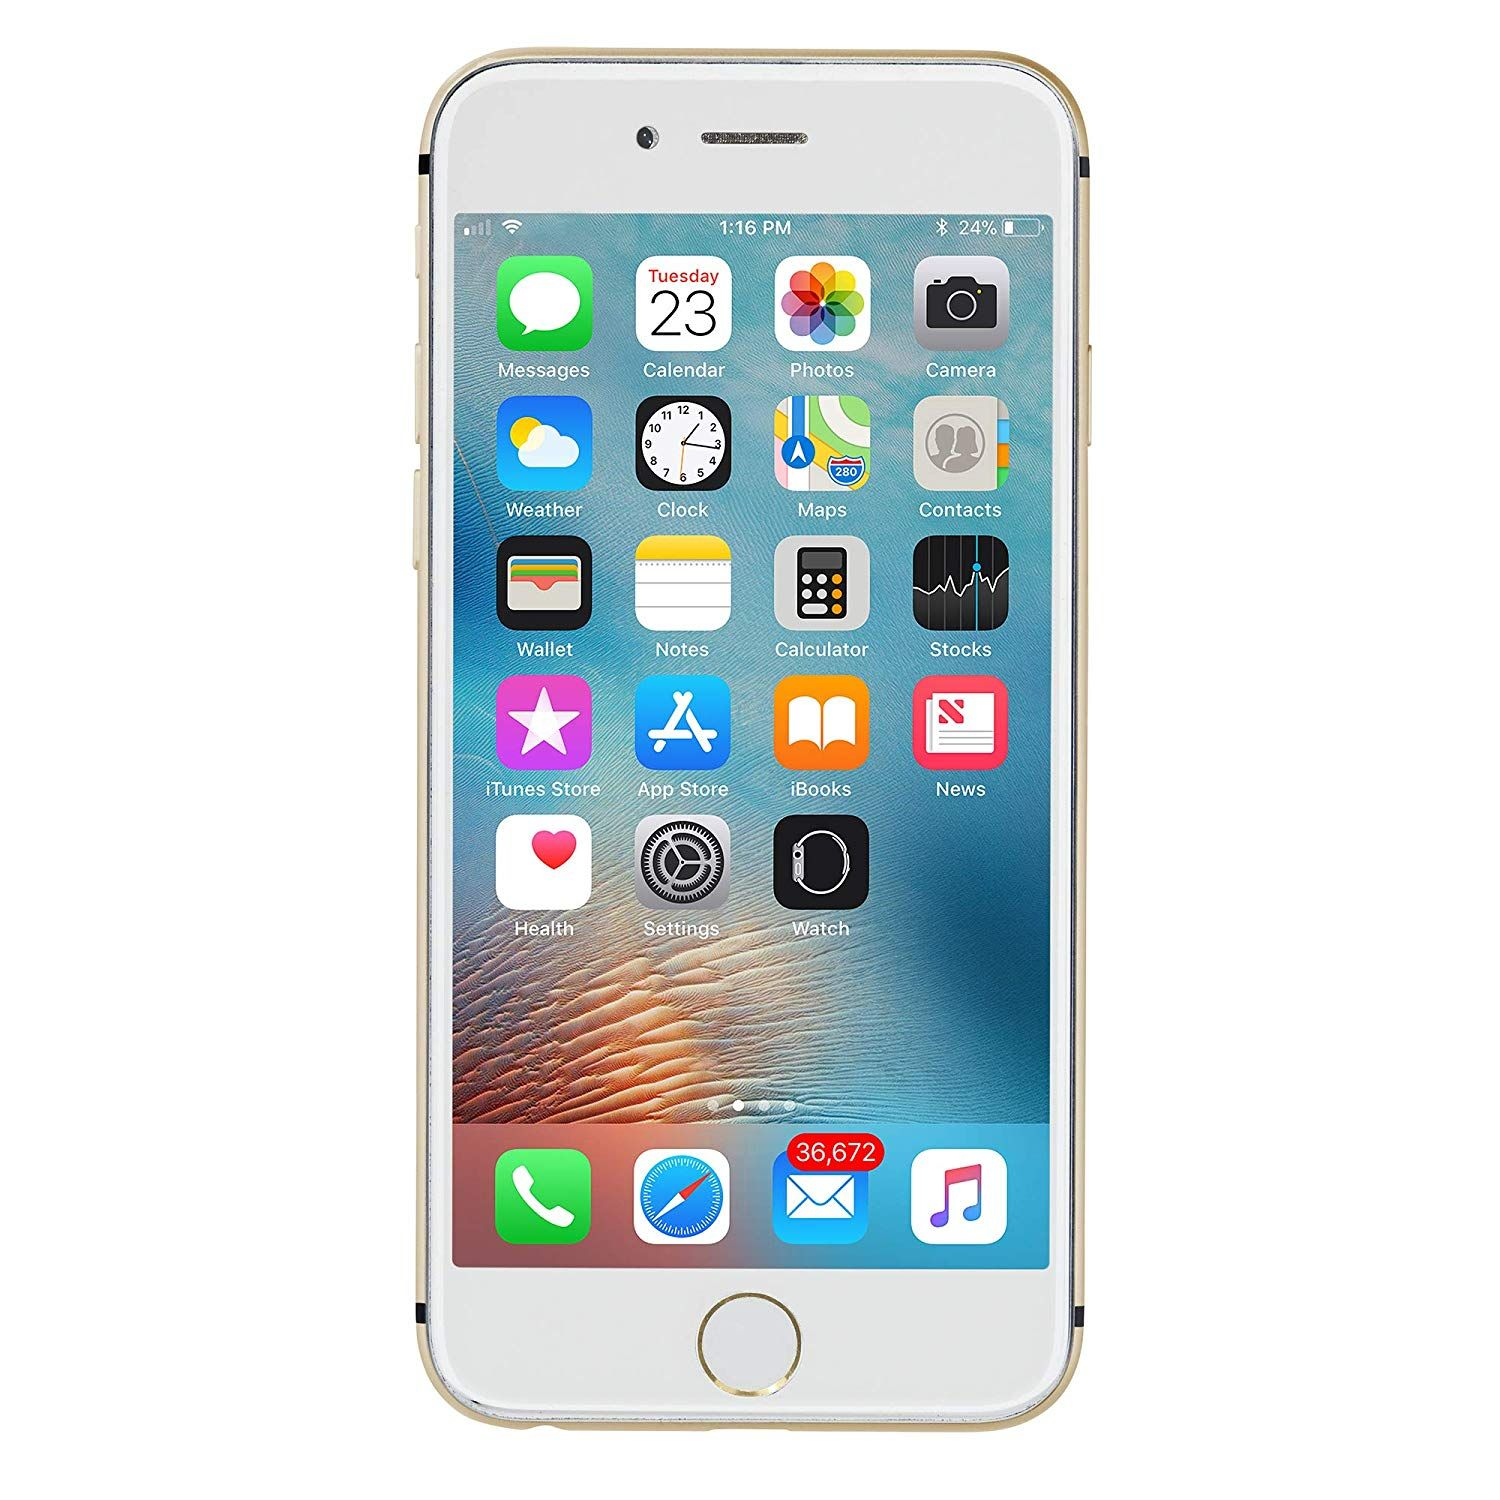 Apple Iphone 6 16 Gb Unlocked Gold Renewed Apple Iphone 6s Plus Apple Iphone Apple Iphone 6s